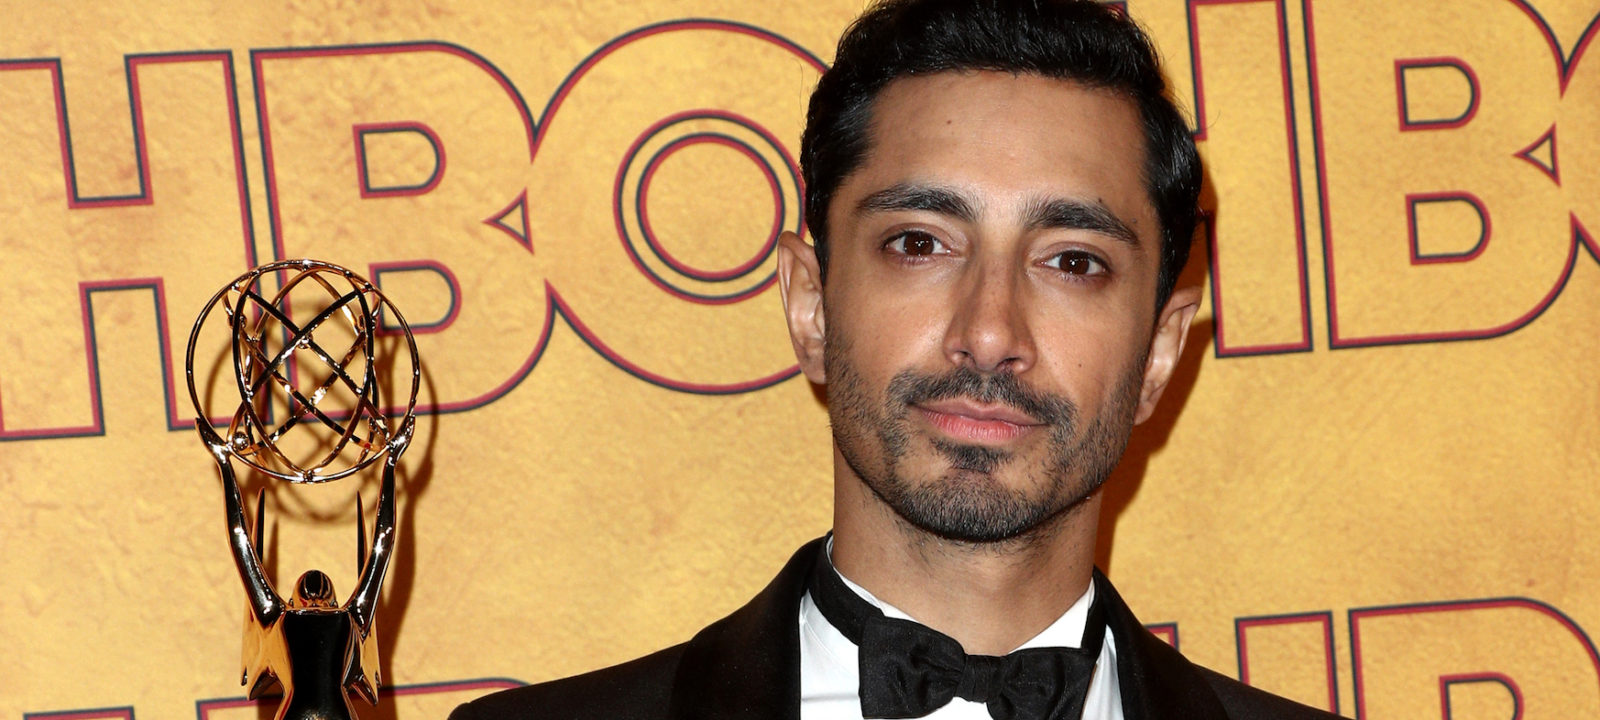 Riz Ahmed attends HBO's Post Emmy Awards Reception at The Plaza at the Pacific Design Center on September 17, 2017 in Los Angeles, California.